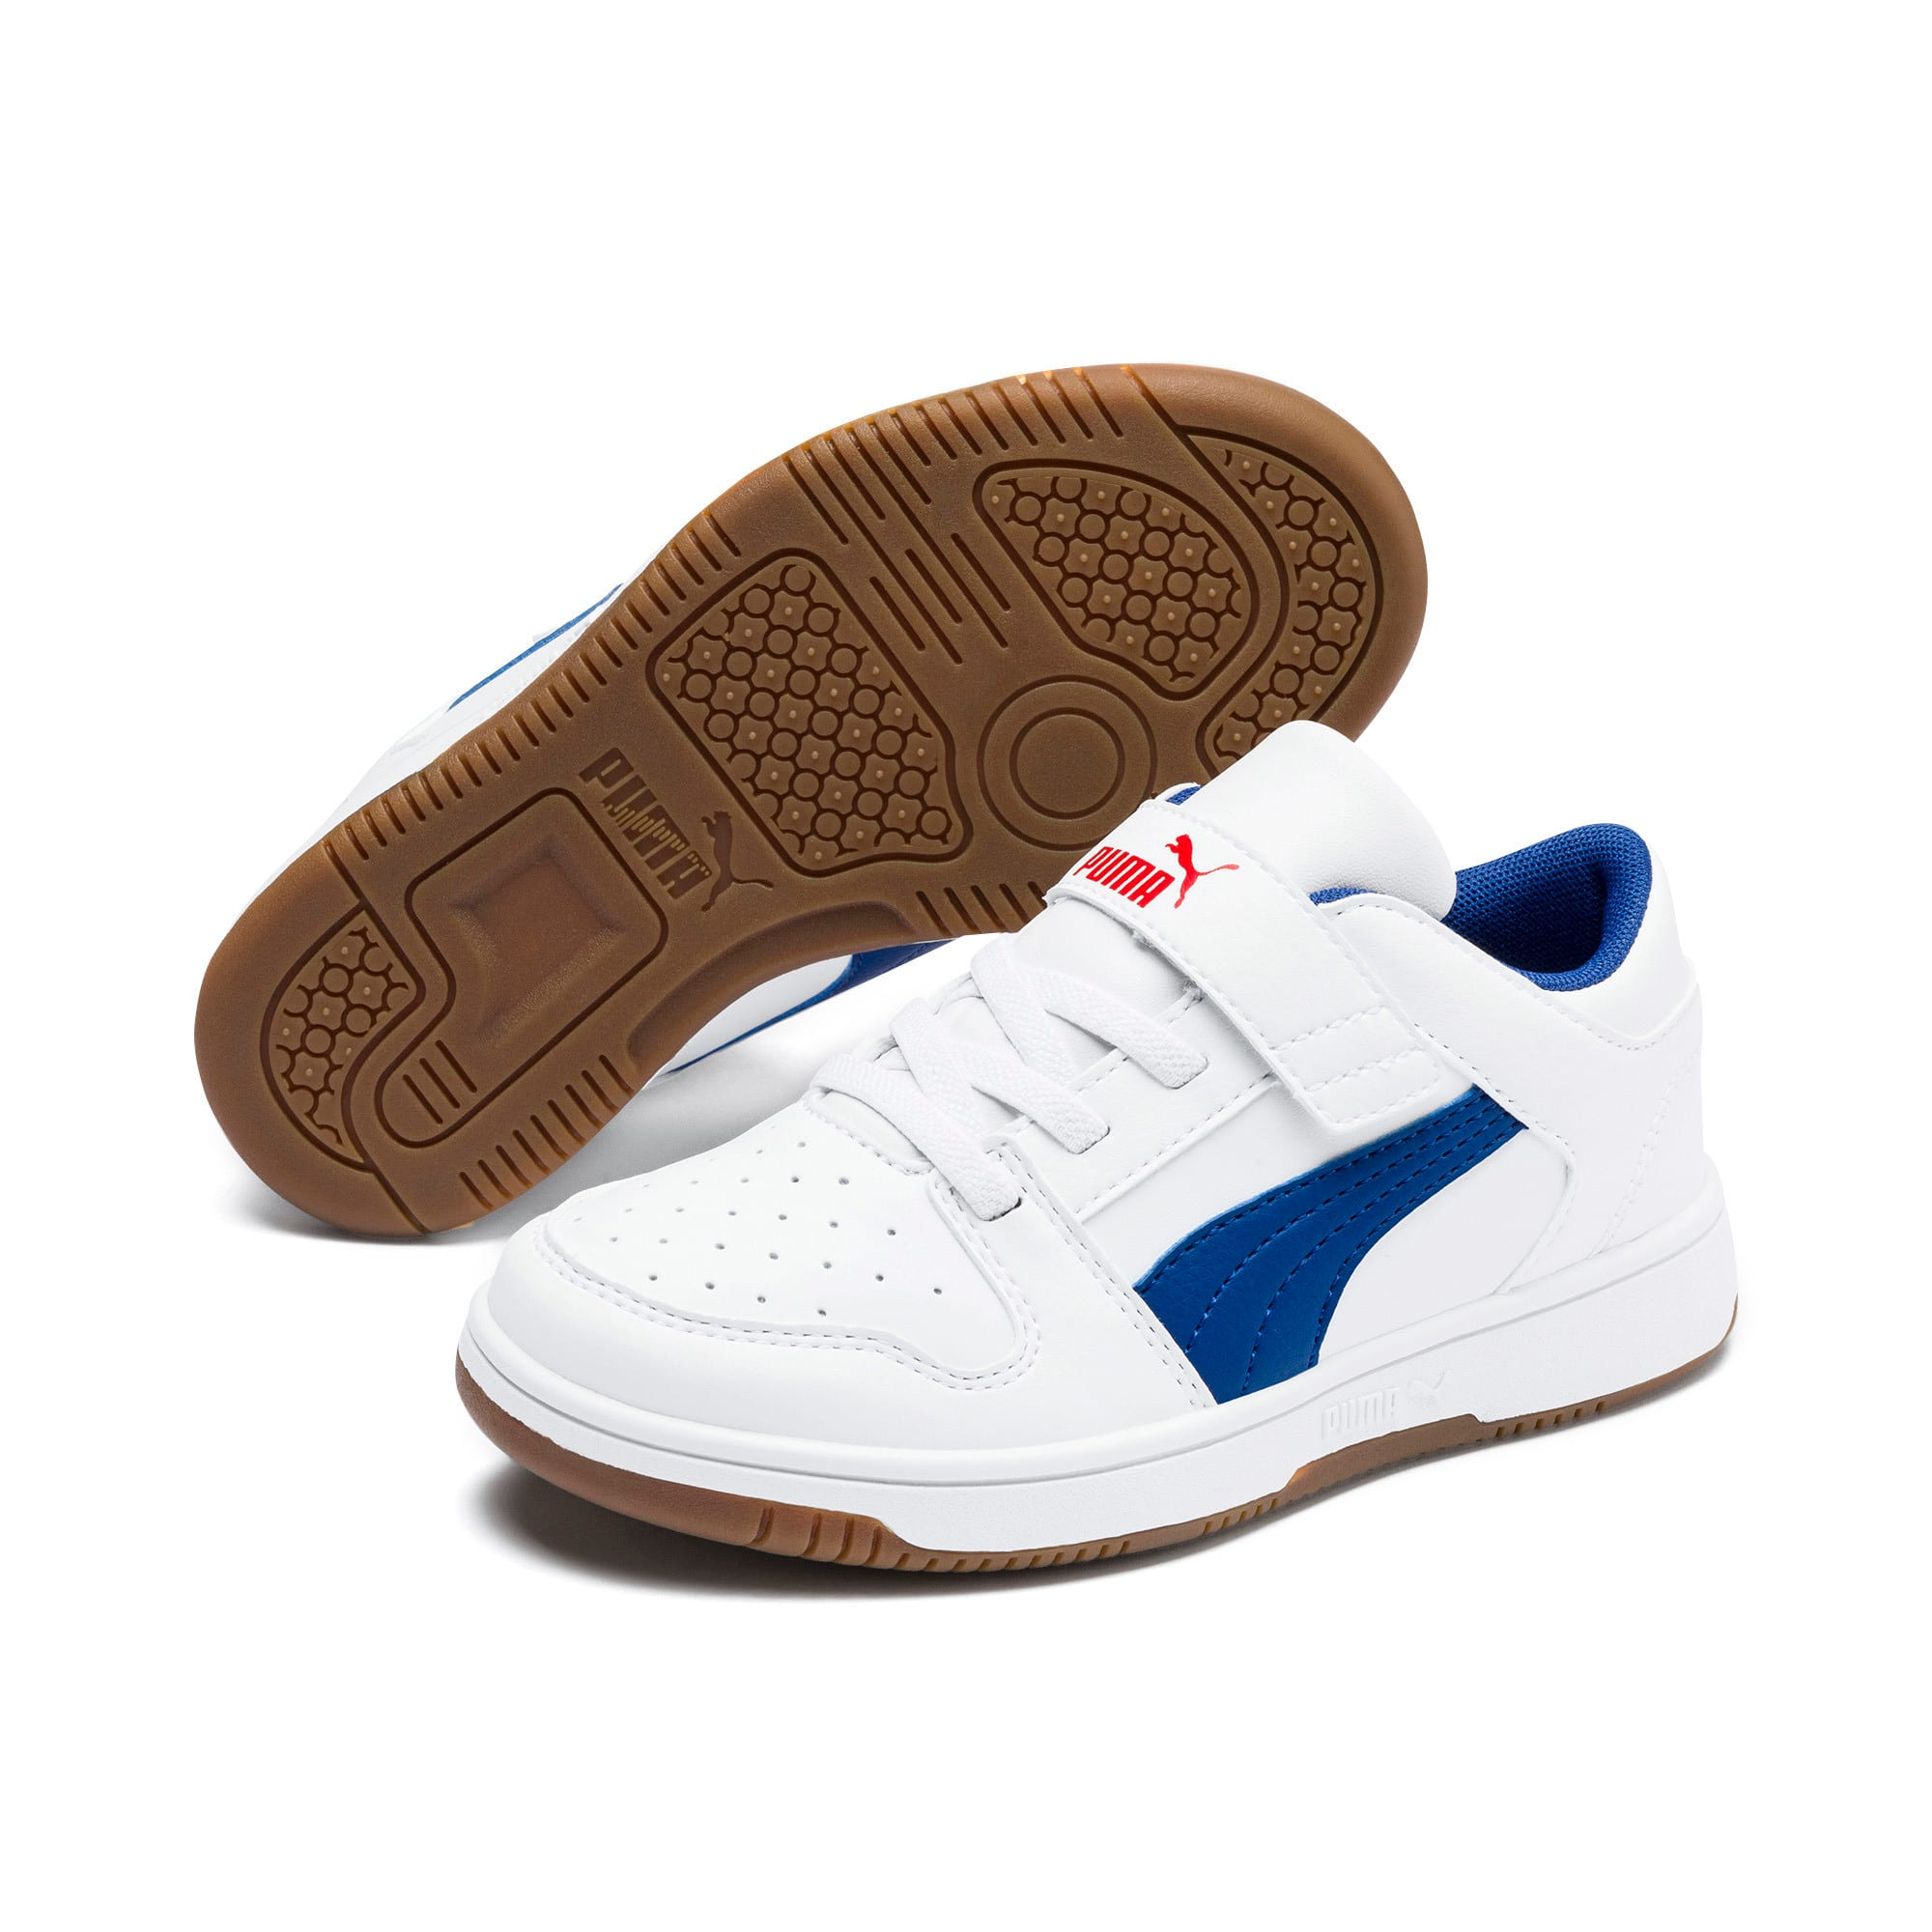 Thumbnail 2 of Rebound Lay-Up Lo V Kids' Trainers, Puma White-Galaxy Blue-Red, medium